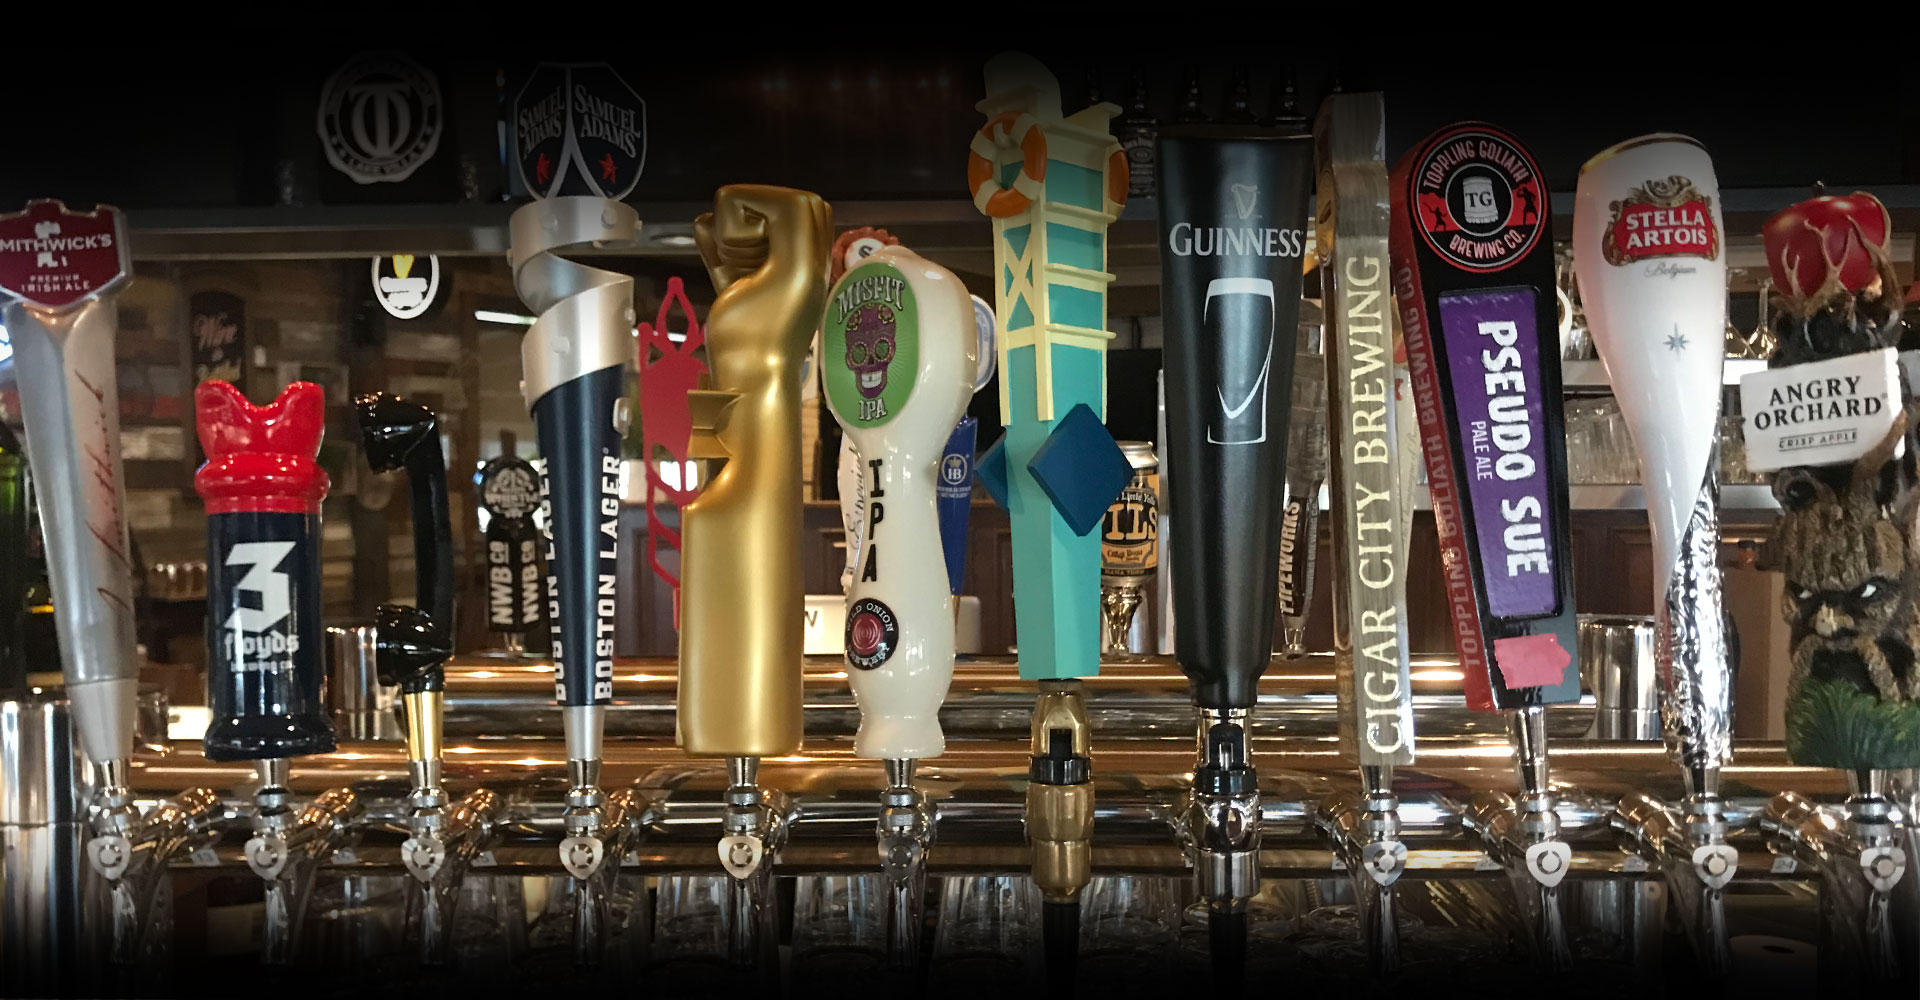 We've got a great mix of local, craft and domestic drafts!